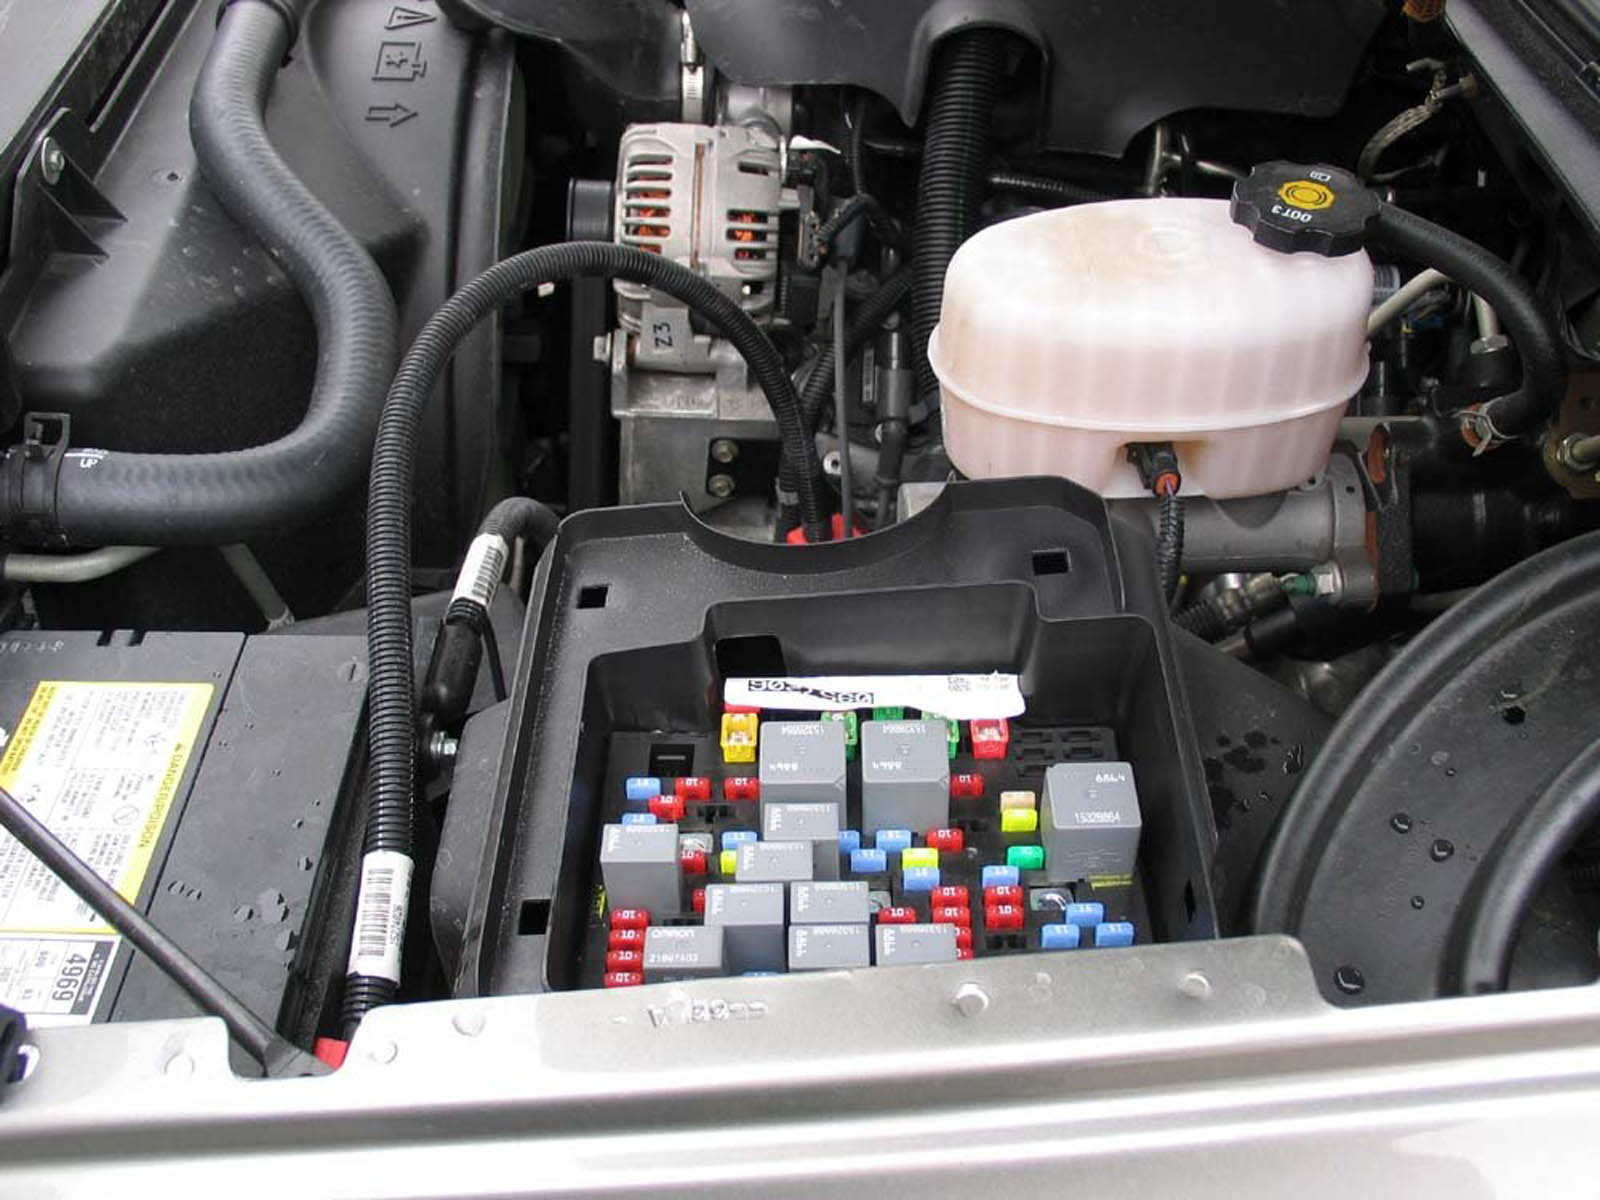 MMMay 27 Fuse Box 04 69845 chevrolet silverado gmt800 1999 2006 fuse box diagram chevroletforum 2003 Chevy Venture Fuse Box Location at panicattacktreatment.co